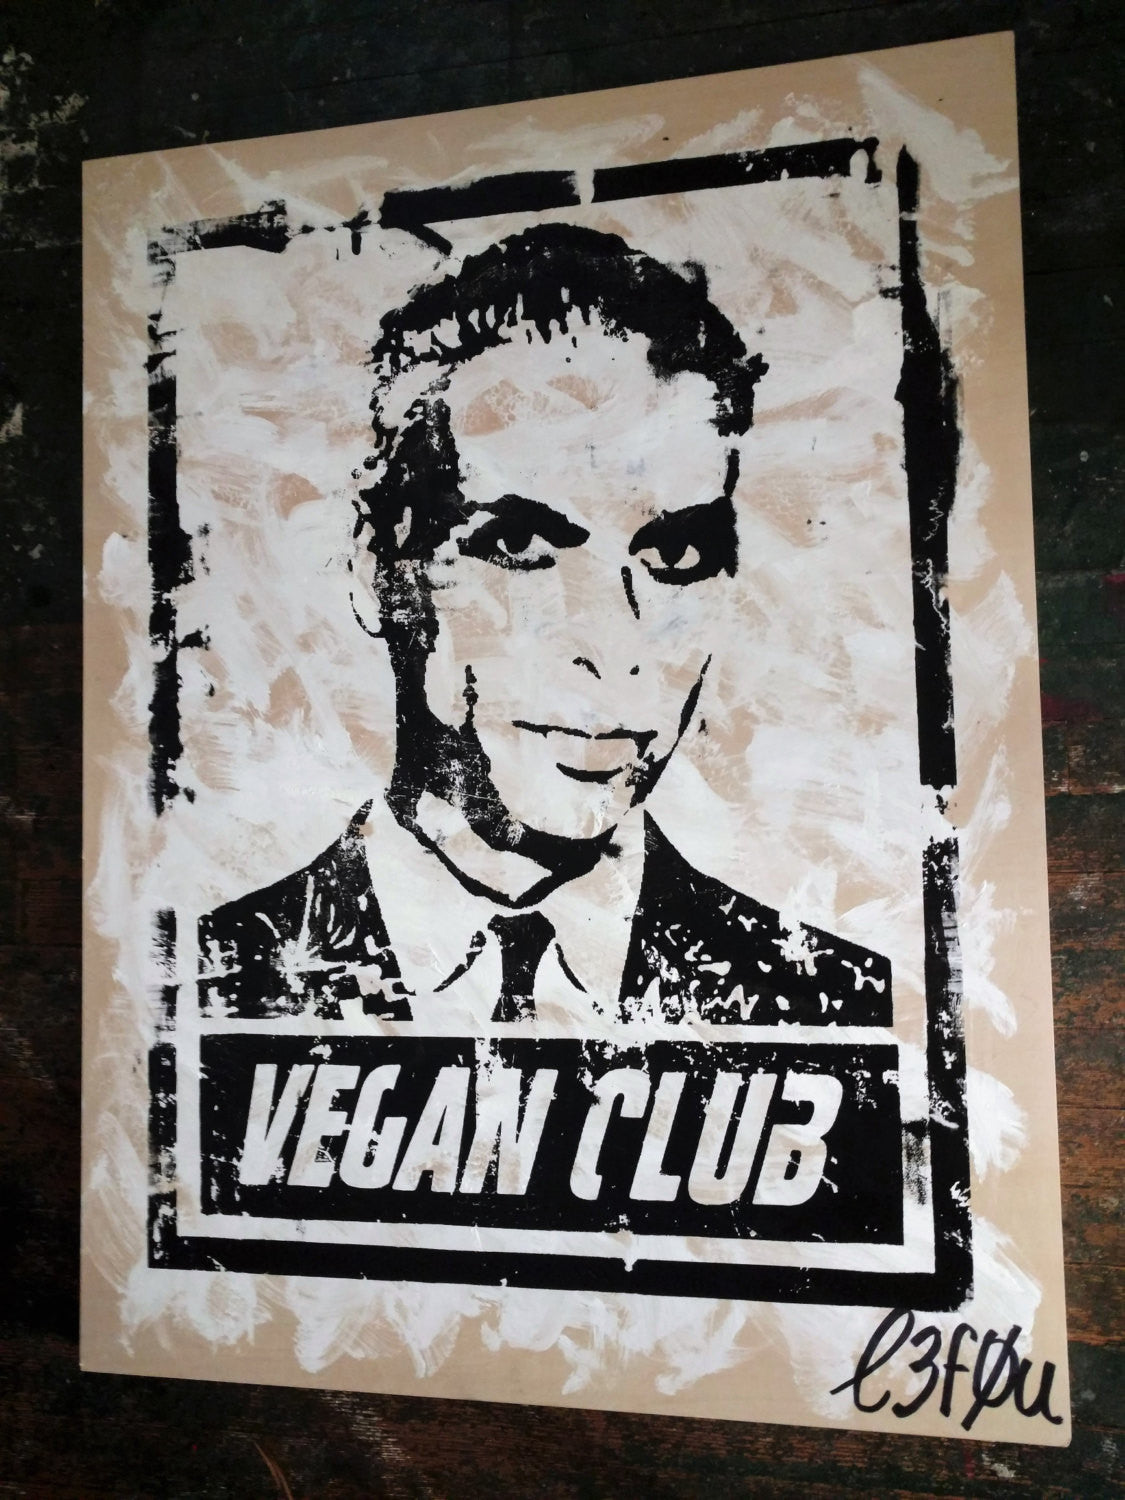 "30x40 Original Artwork ""Vegan Club"" featuring your fav vegan celeb Tony Kanal signed L3F0u (1 of X)"